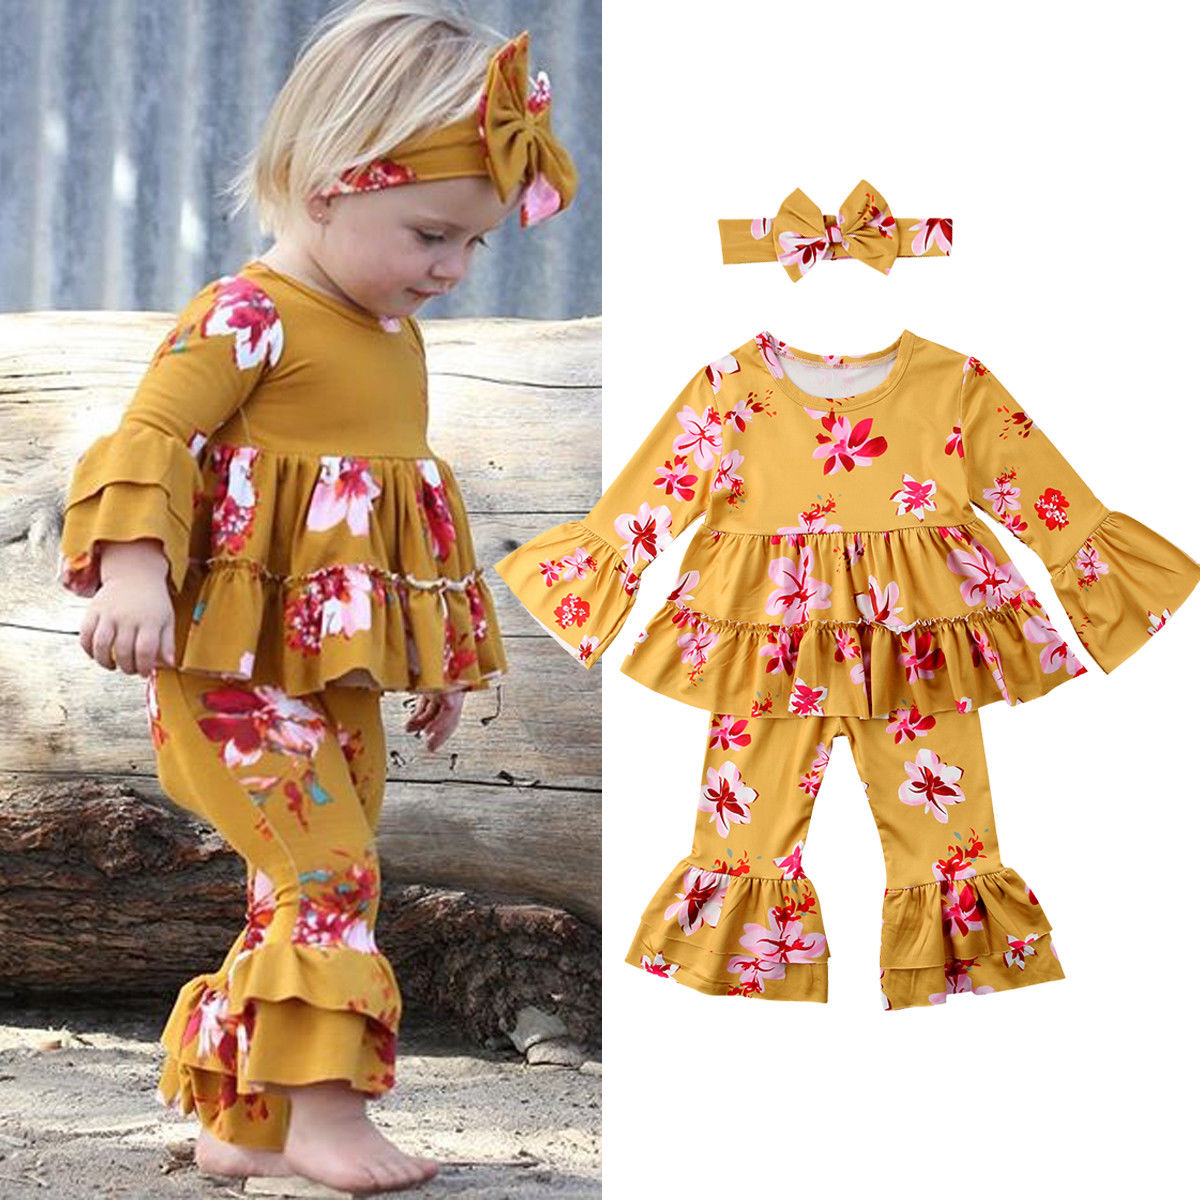 Kids Kid Baby Girl Floral Clothes Ruffle Dress Tops T Shirts Wid